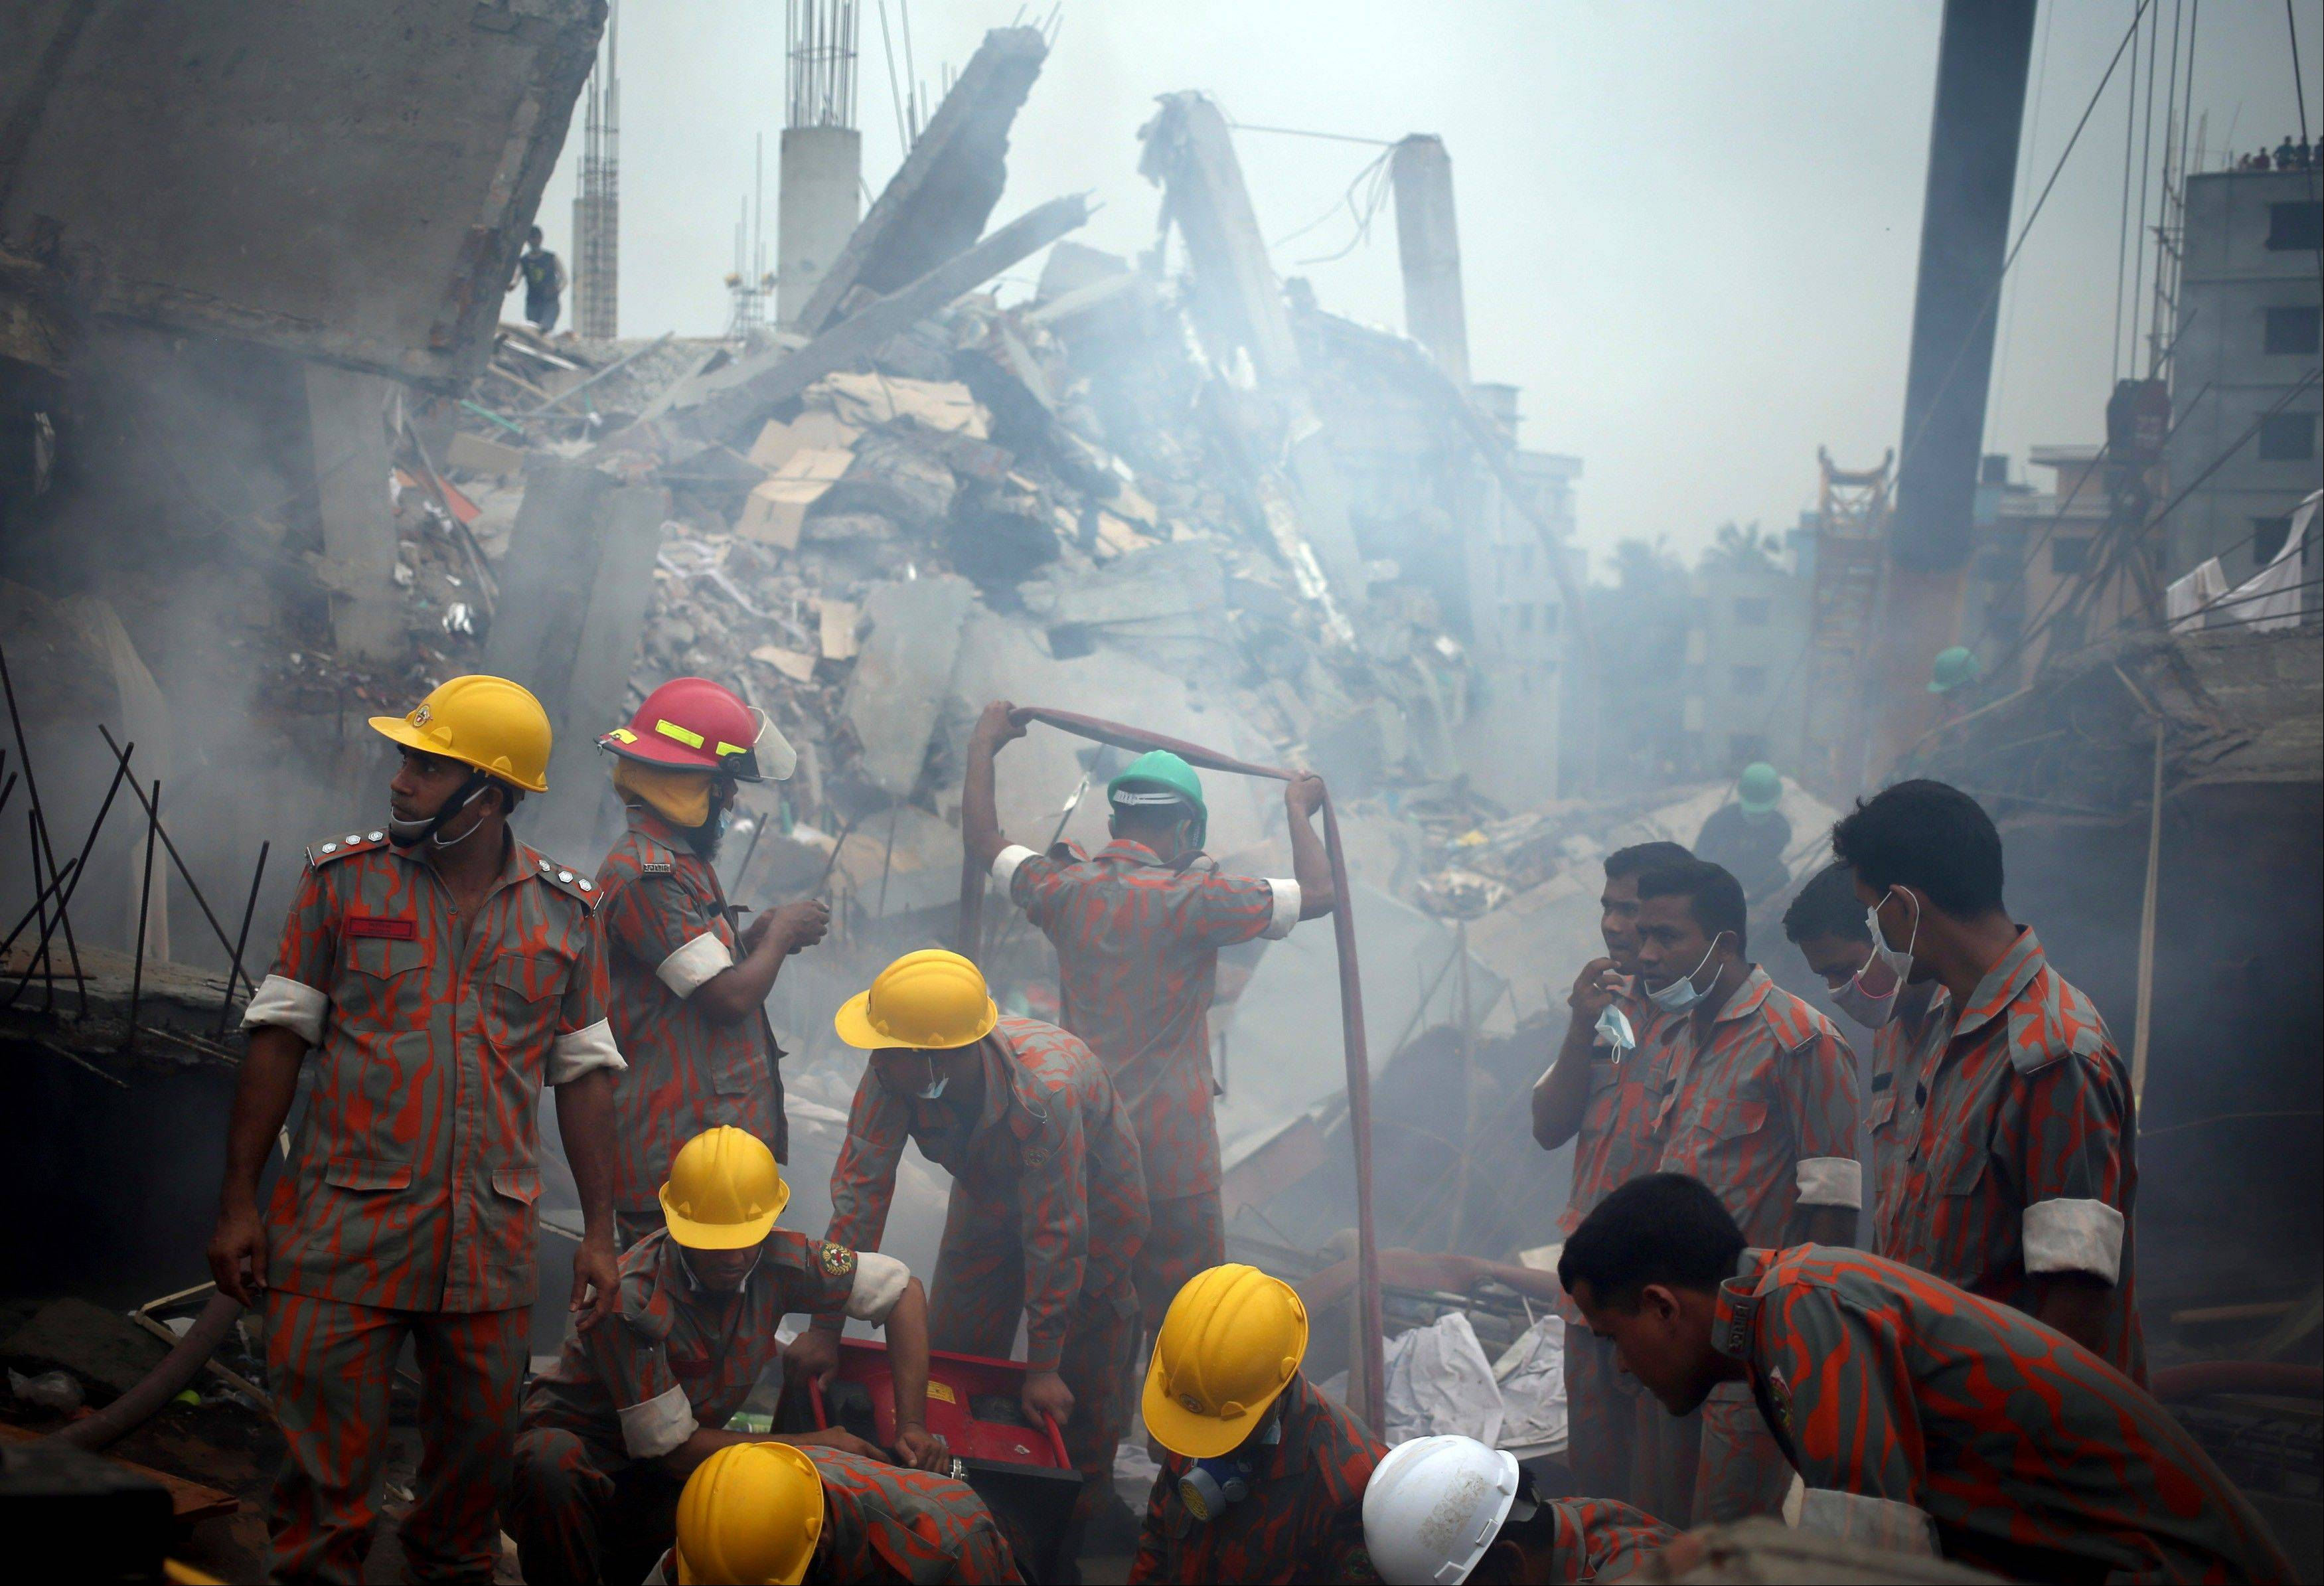 On Monday rescue workers gave up hopes of finding any more survivors in the remains of a building that collapsed five days ago, and began using heavy machinery on Monday to dislodge the rubble and look for bodies -- mostly of workers in garment factories there. At least 381 people were killed when the illegally constructed, 8-story Rana Plaza collapsed in a heap on Wednesday morning along with thousands of workers in the five garment factories in the building.